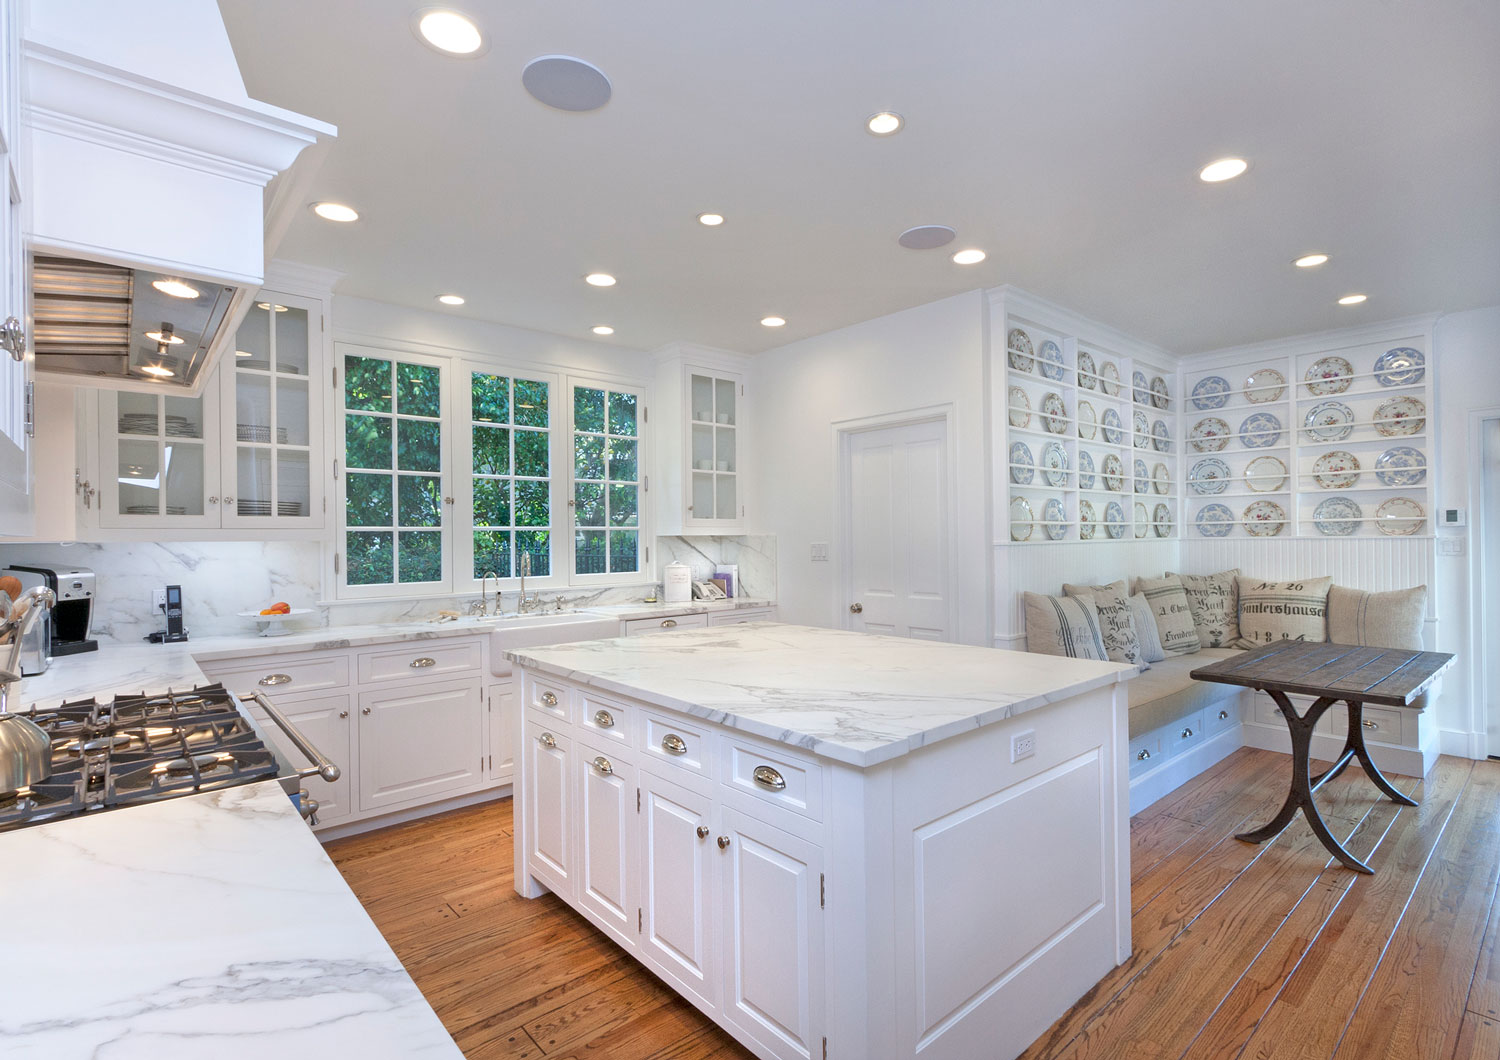 05-traditional-kitchen-marble-top-island-breakfast-nook-plate-collection-gary-drake-general-contractor.jpg